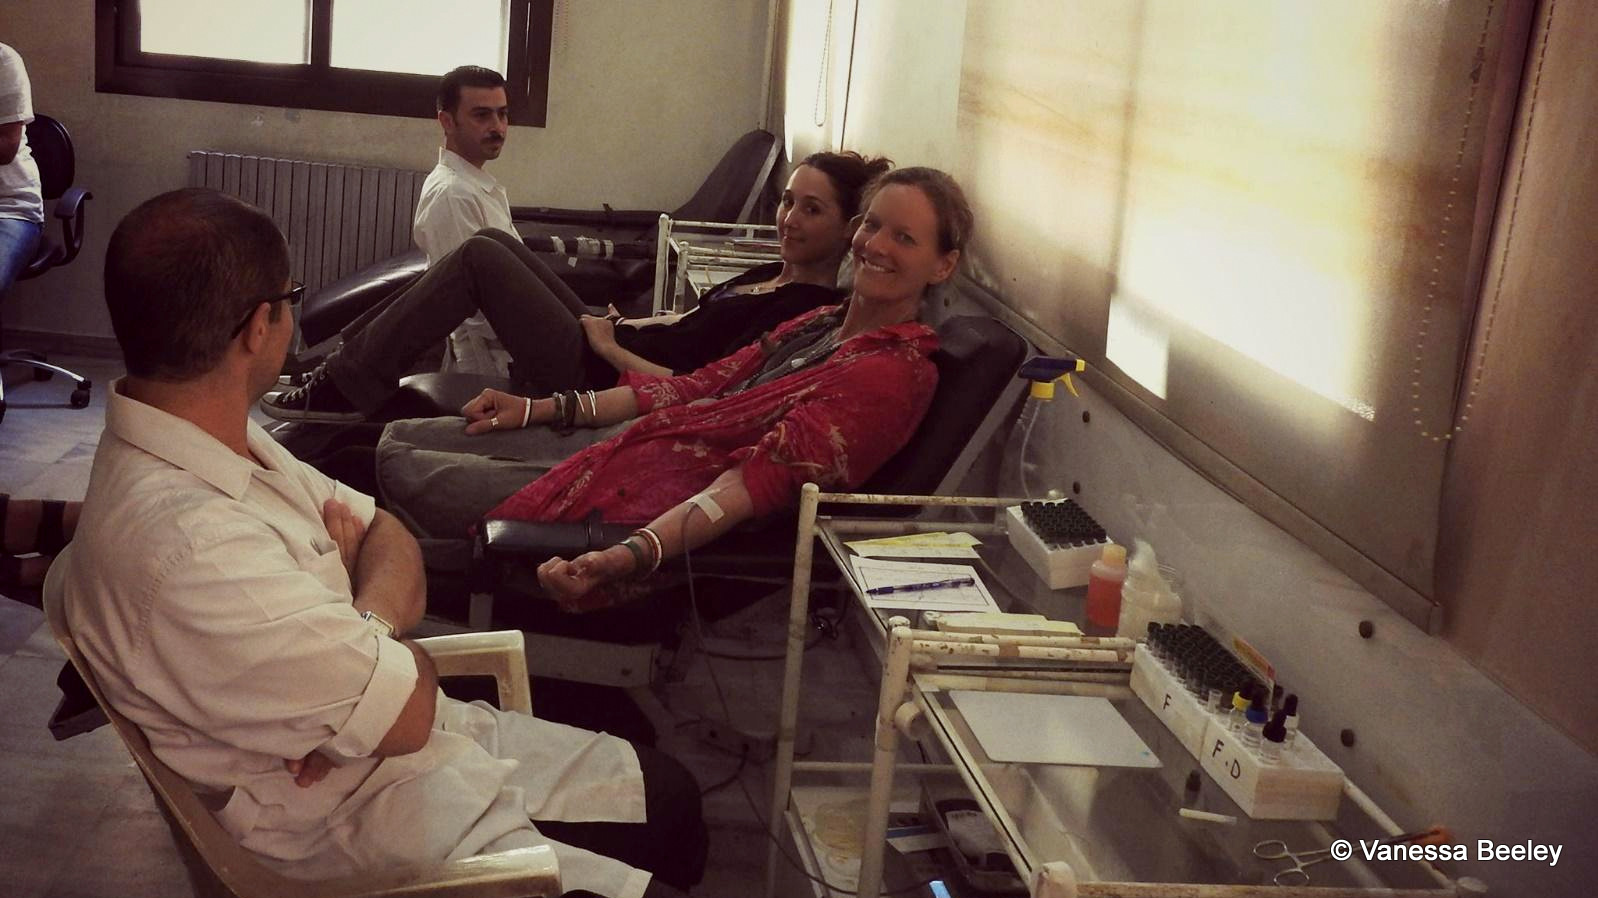 Eva Bartlett and Vanessa Beeley giving blood in Aleppo on Aug. 15, 2016. (Photo provided by Vanessa Beeley)